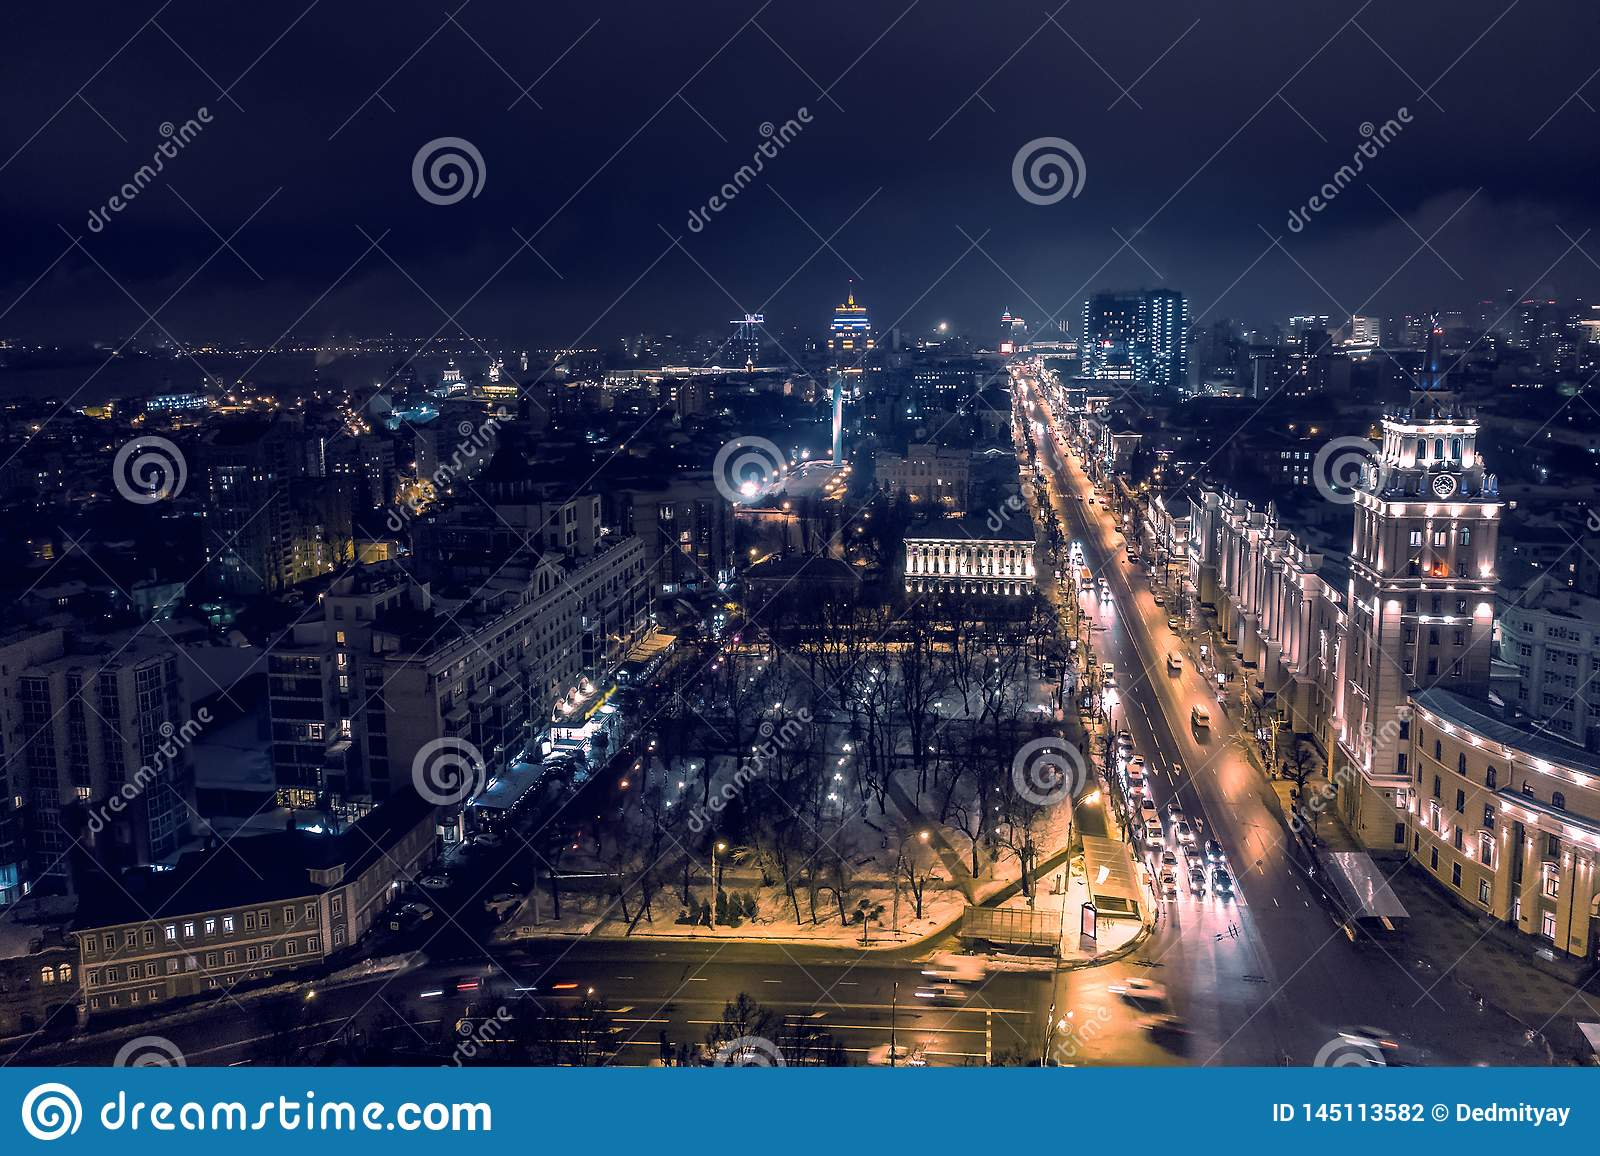 Arial view of night city Voronezh, evening cityscape with roads, parks and traffic, drone shot